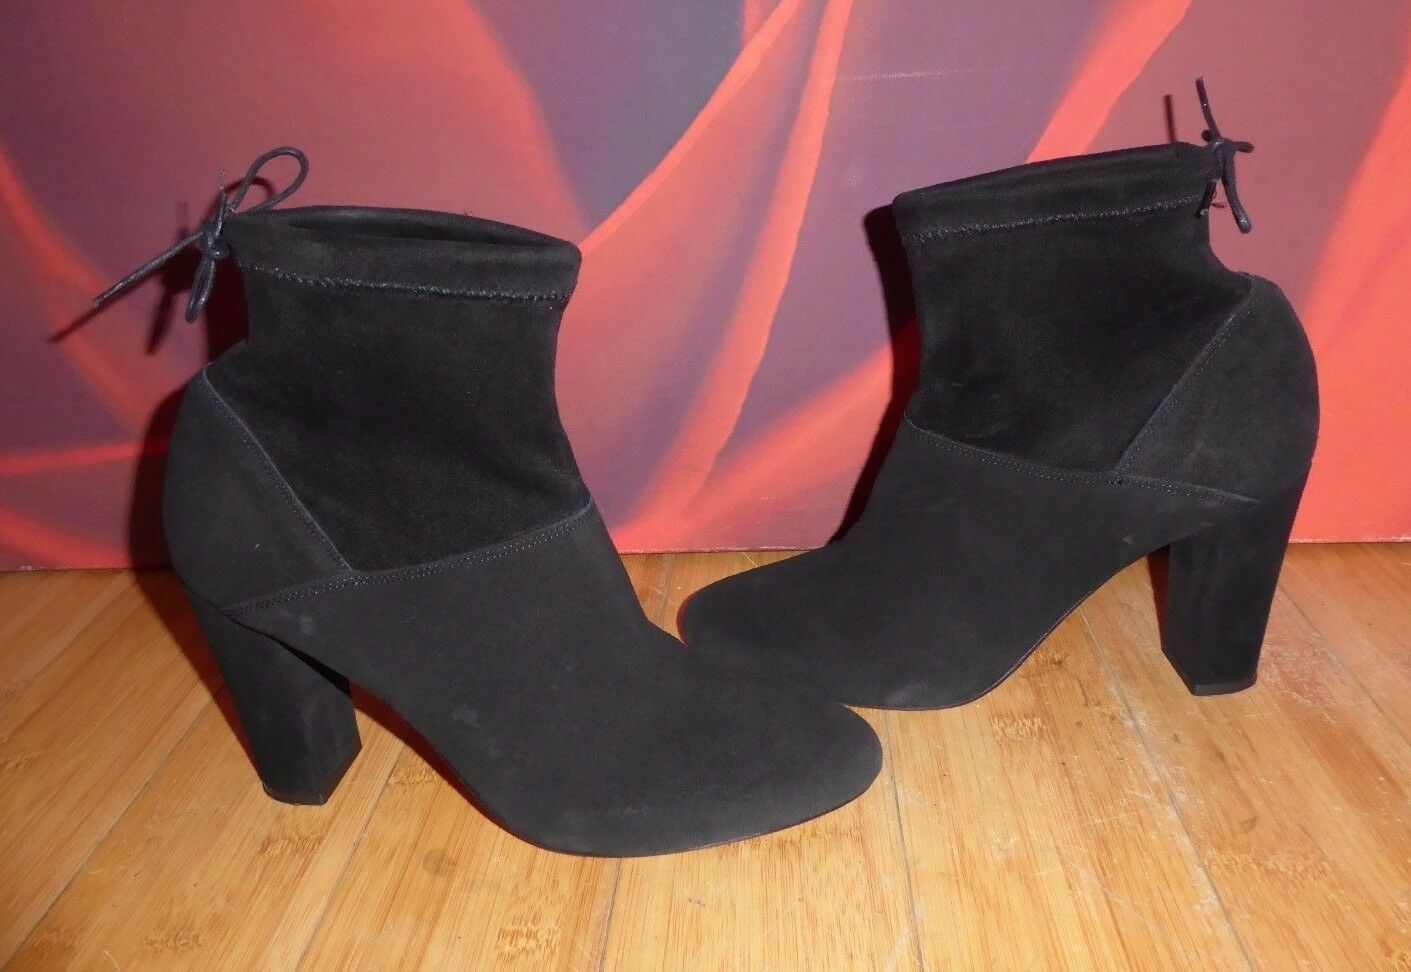 34 SUPERB FAITH BLACK LEATHER SUEDE VICTORIAN  HEEL ANKLE BOOTS  UK 7 EU 40